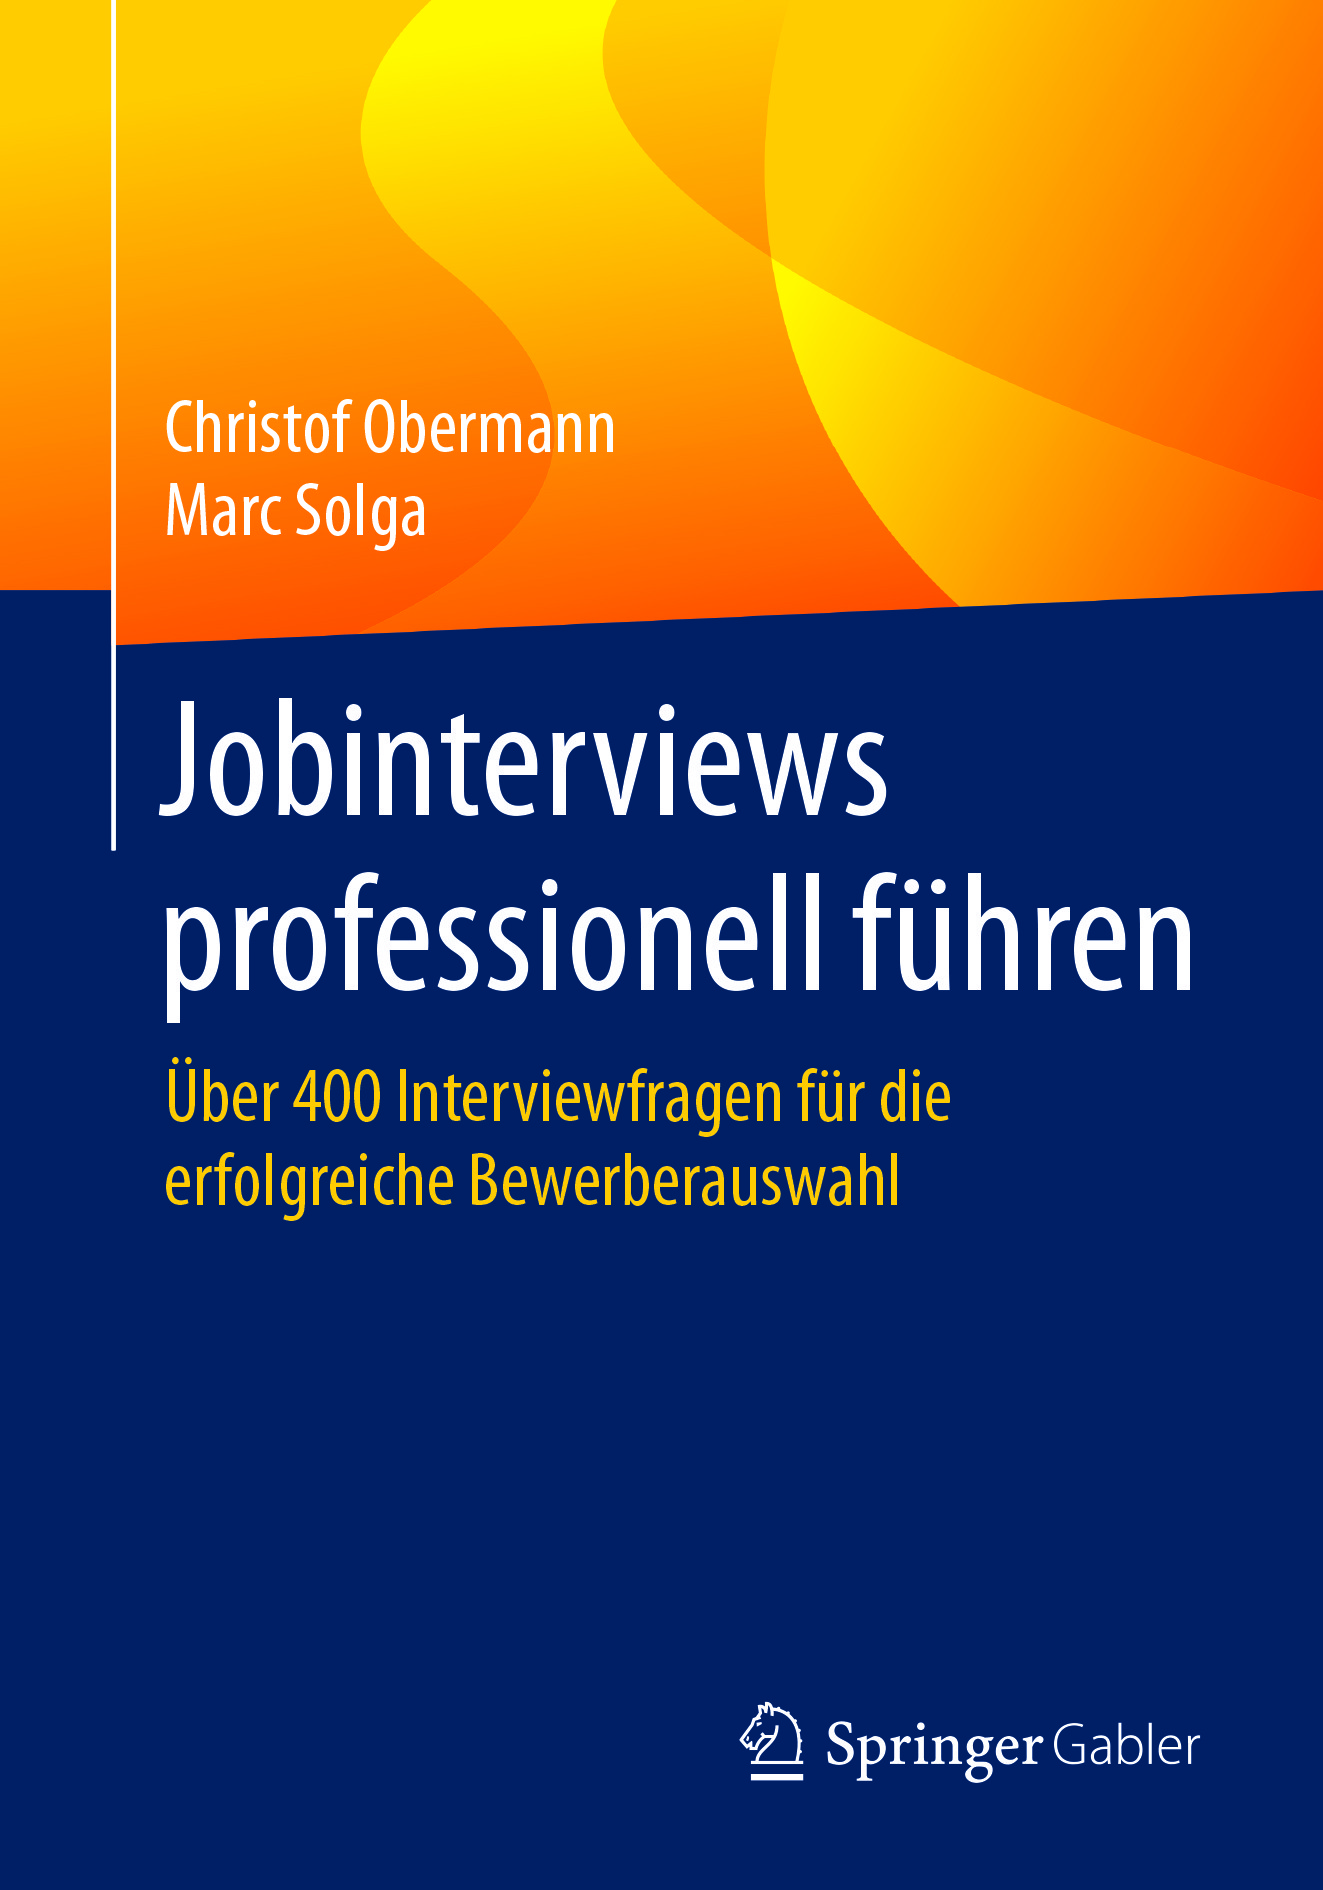 Obermann, Christof - Jobinterviews professionell führen, ebook